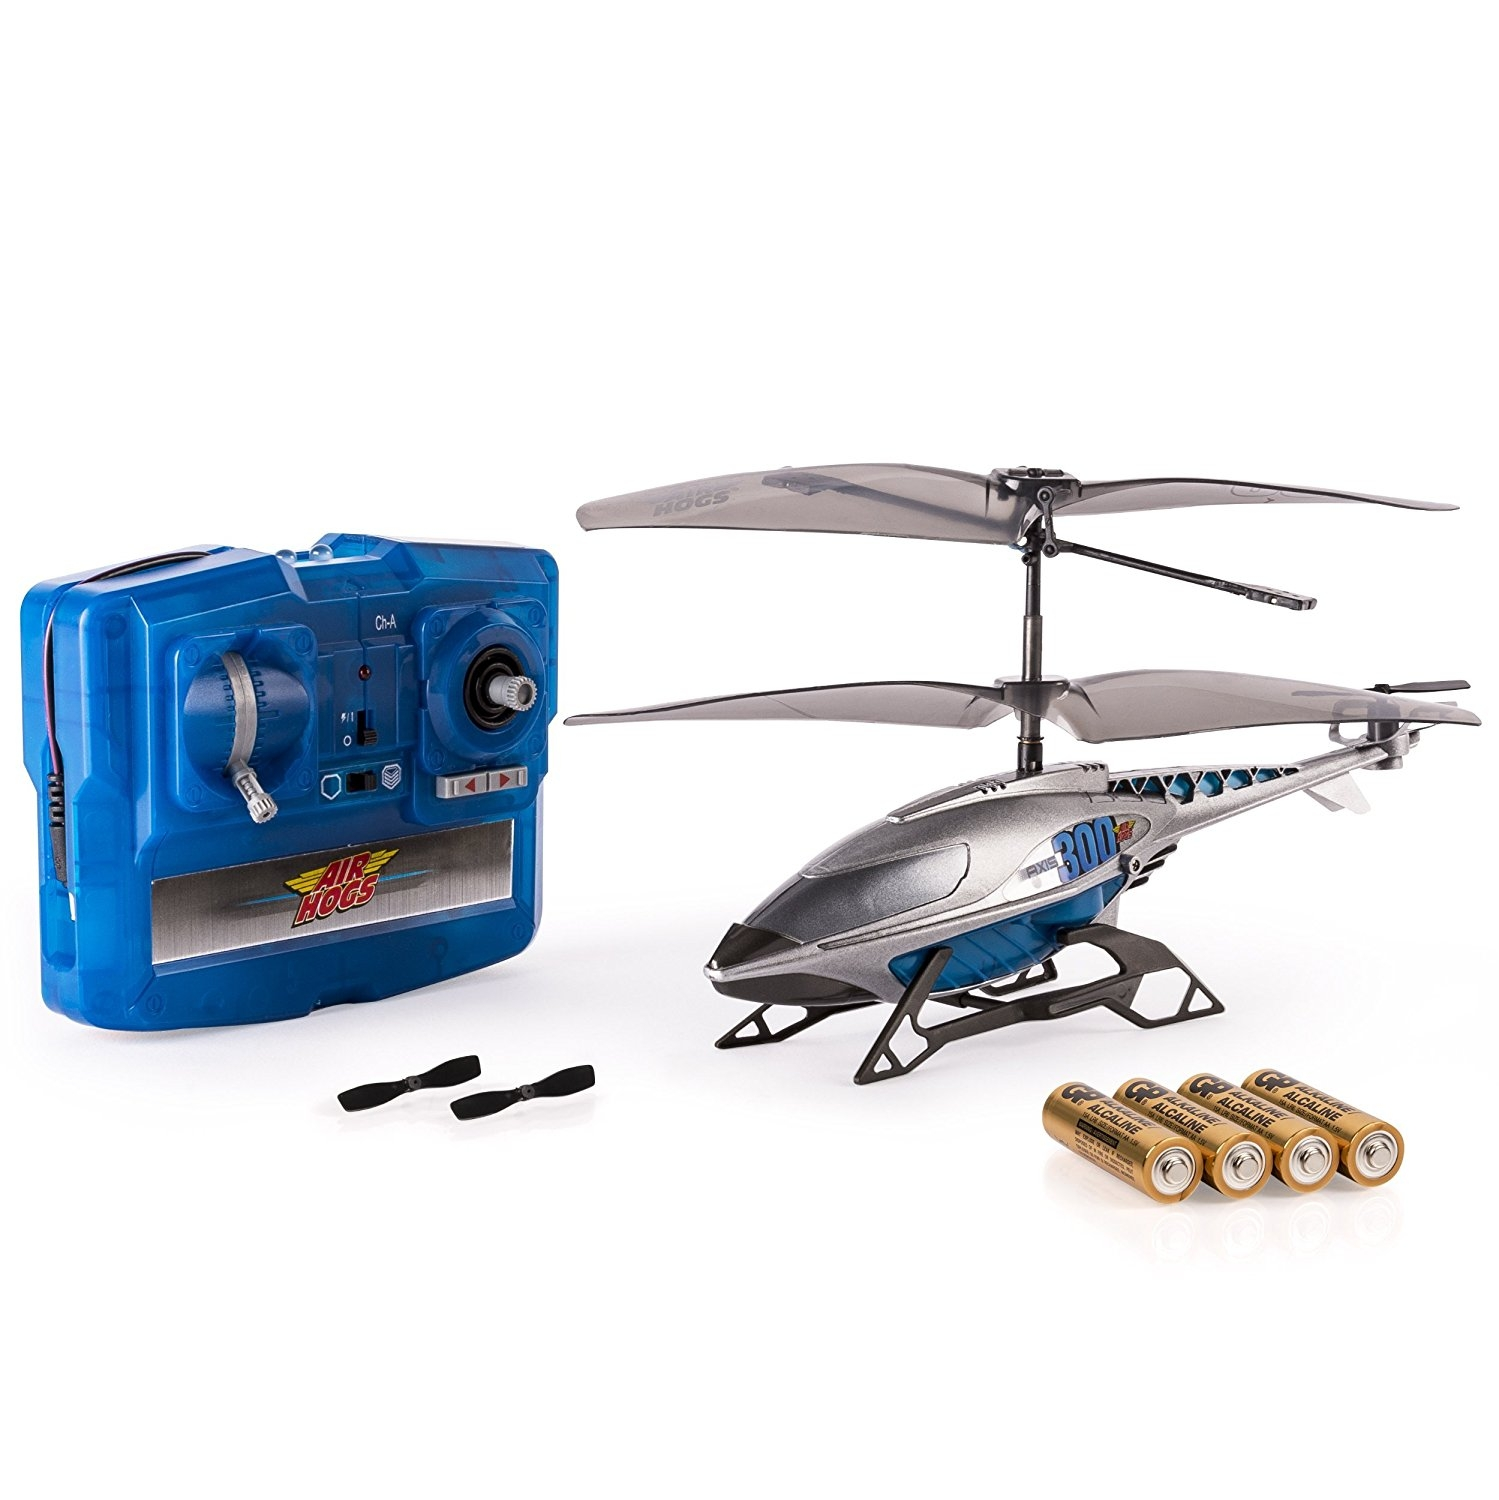 Air Hogs, Axis 300x RC Helicopter With Batteries Silver & Blue by SPIN MASTER